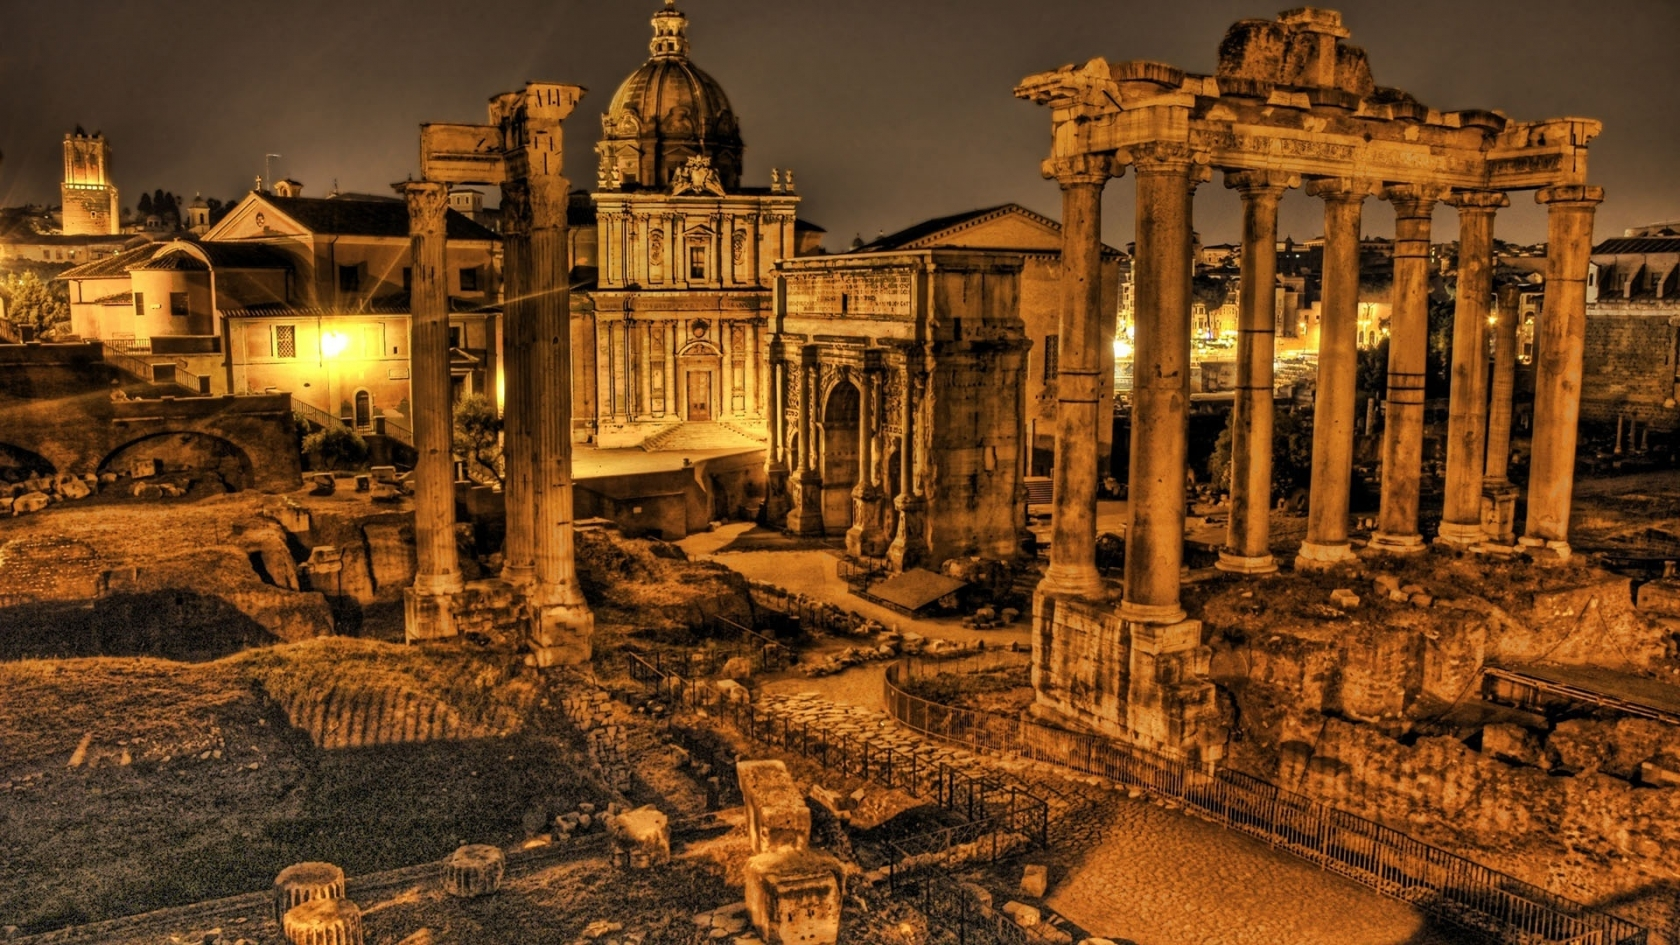 Rome Ruins for 1680 x 945 HDTV resolution